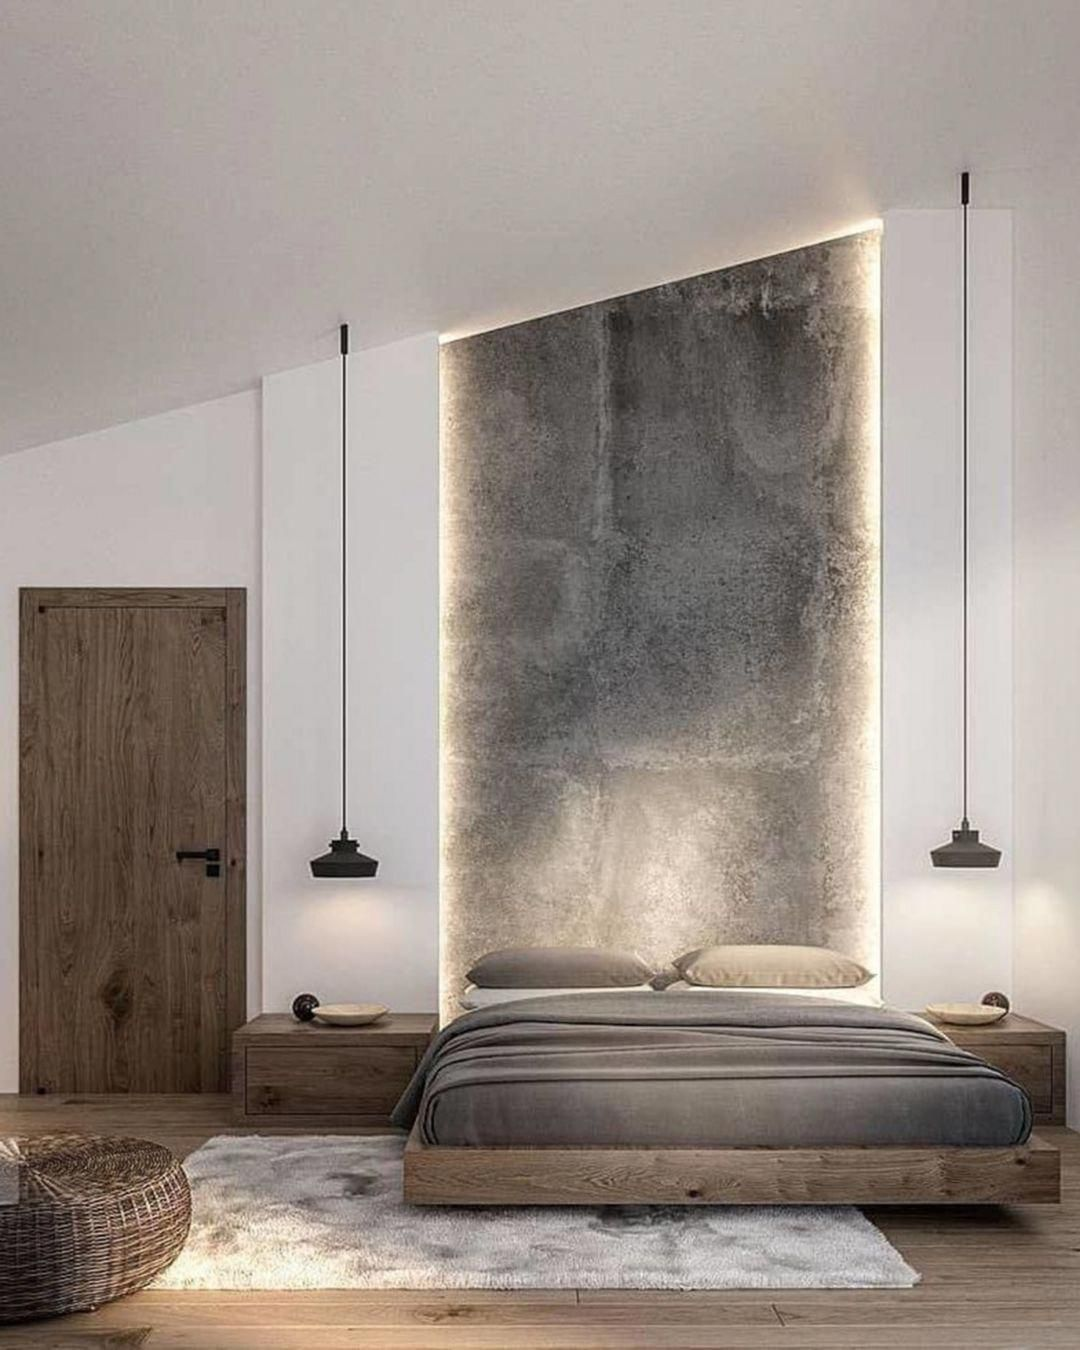 Best rustic interior design ideas rusticbedroom also wall rh pinterest